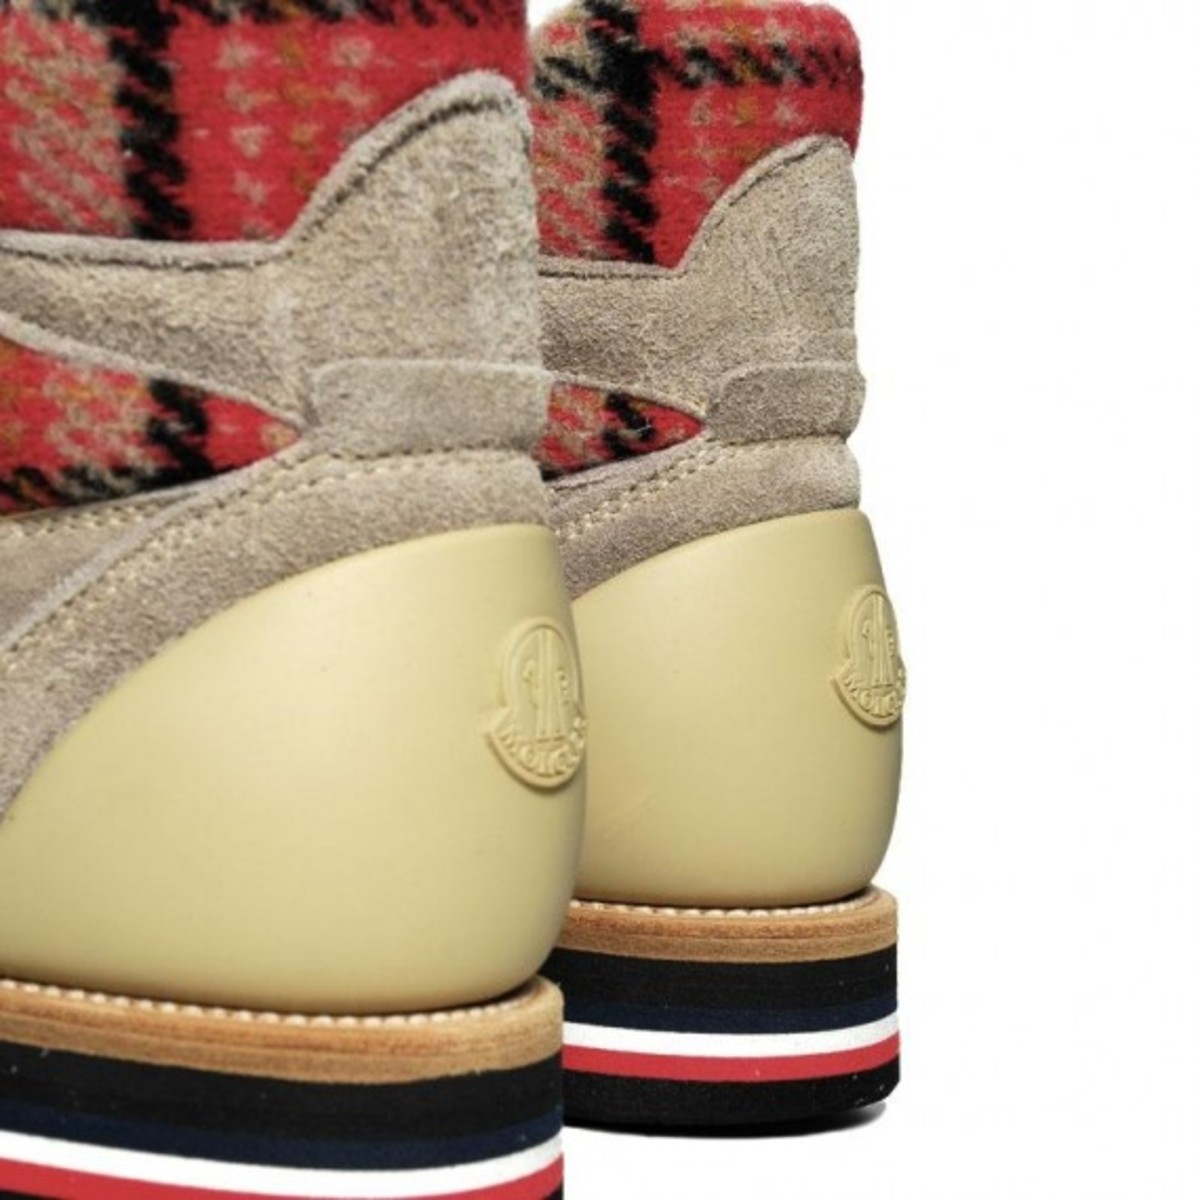 wool-patch-suede-mountain-boot-09